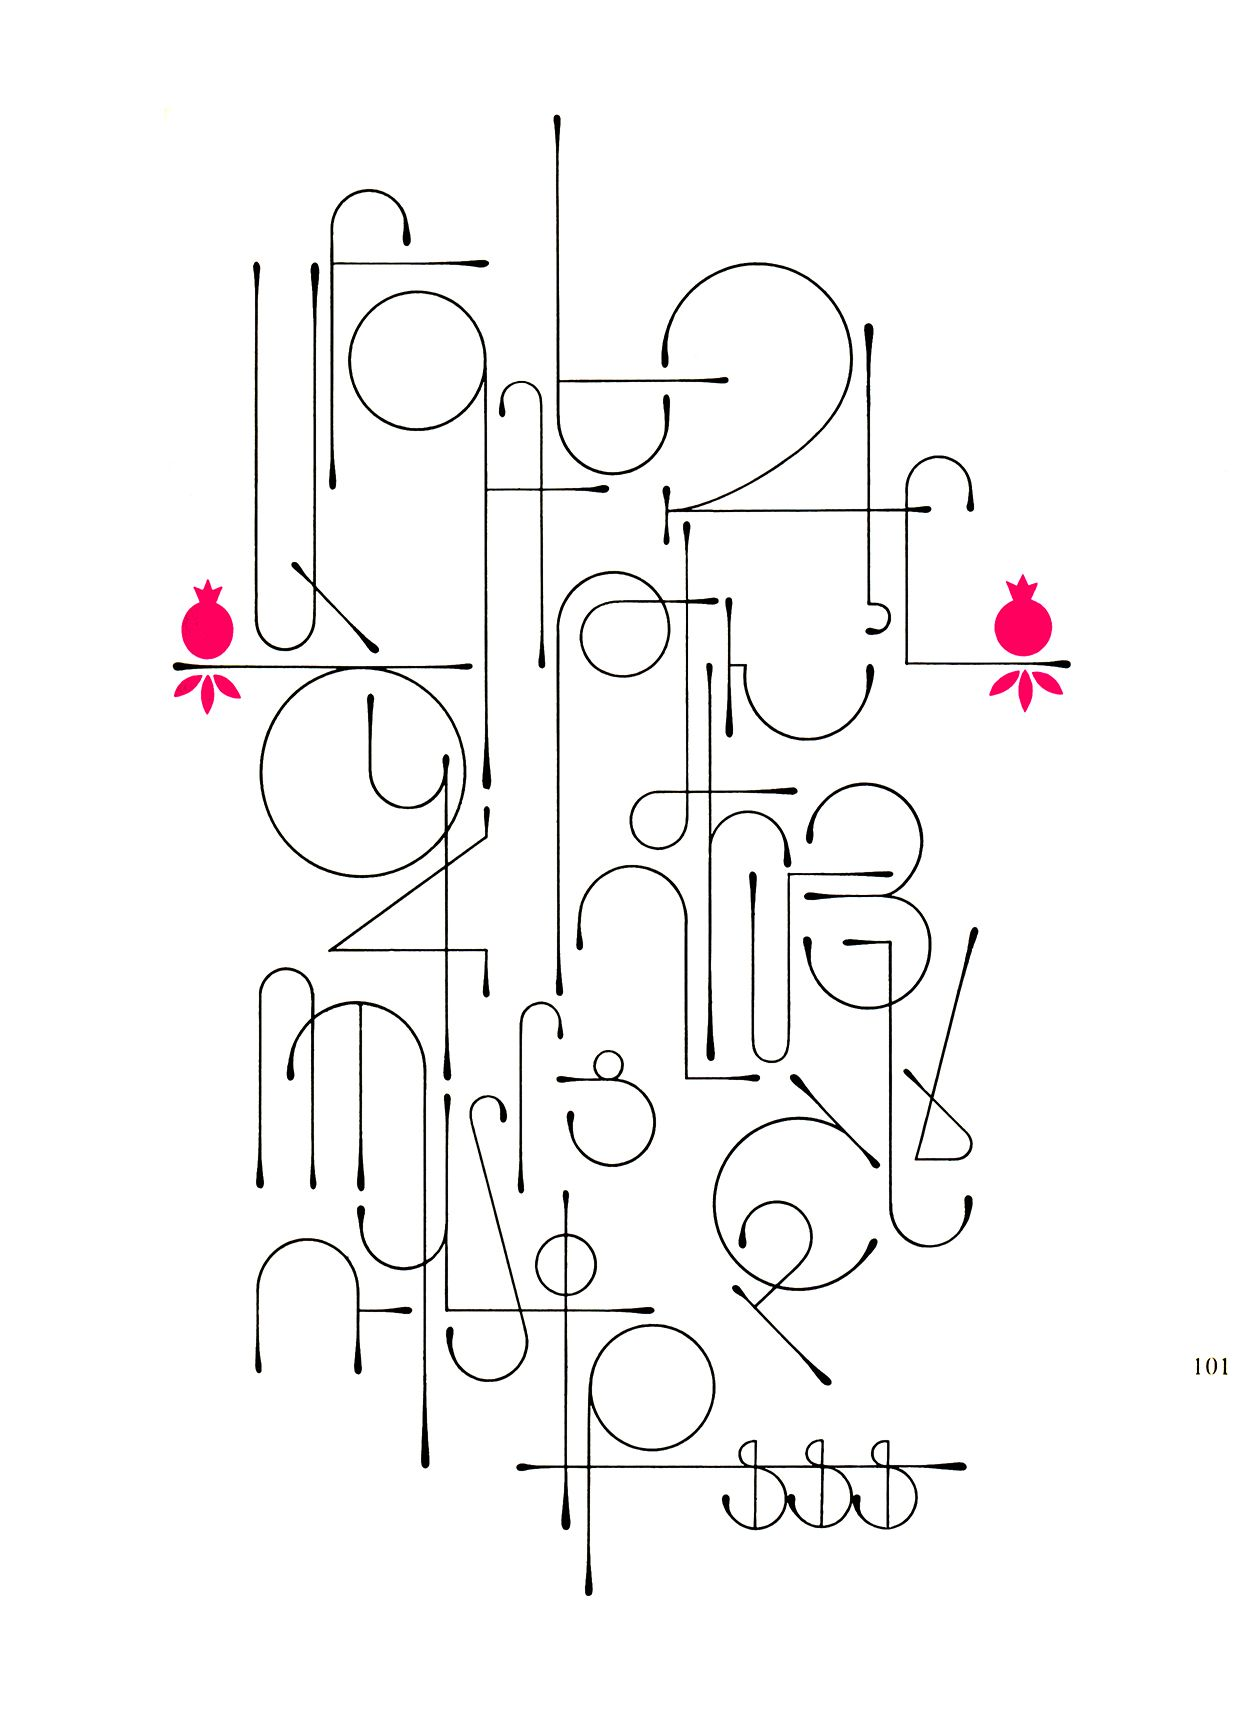 From Fred Africkian's The Art of Letter Type (Armenian